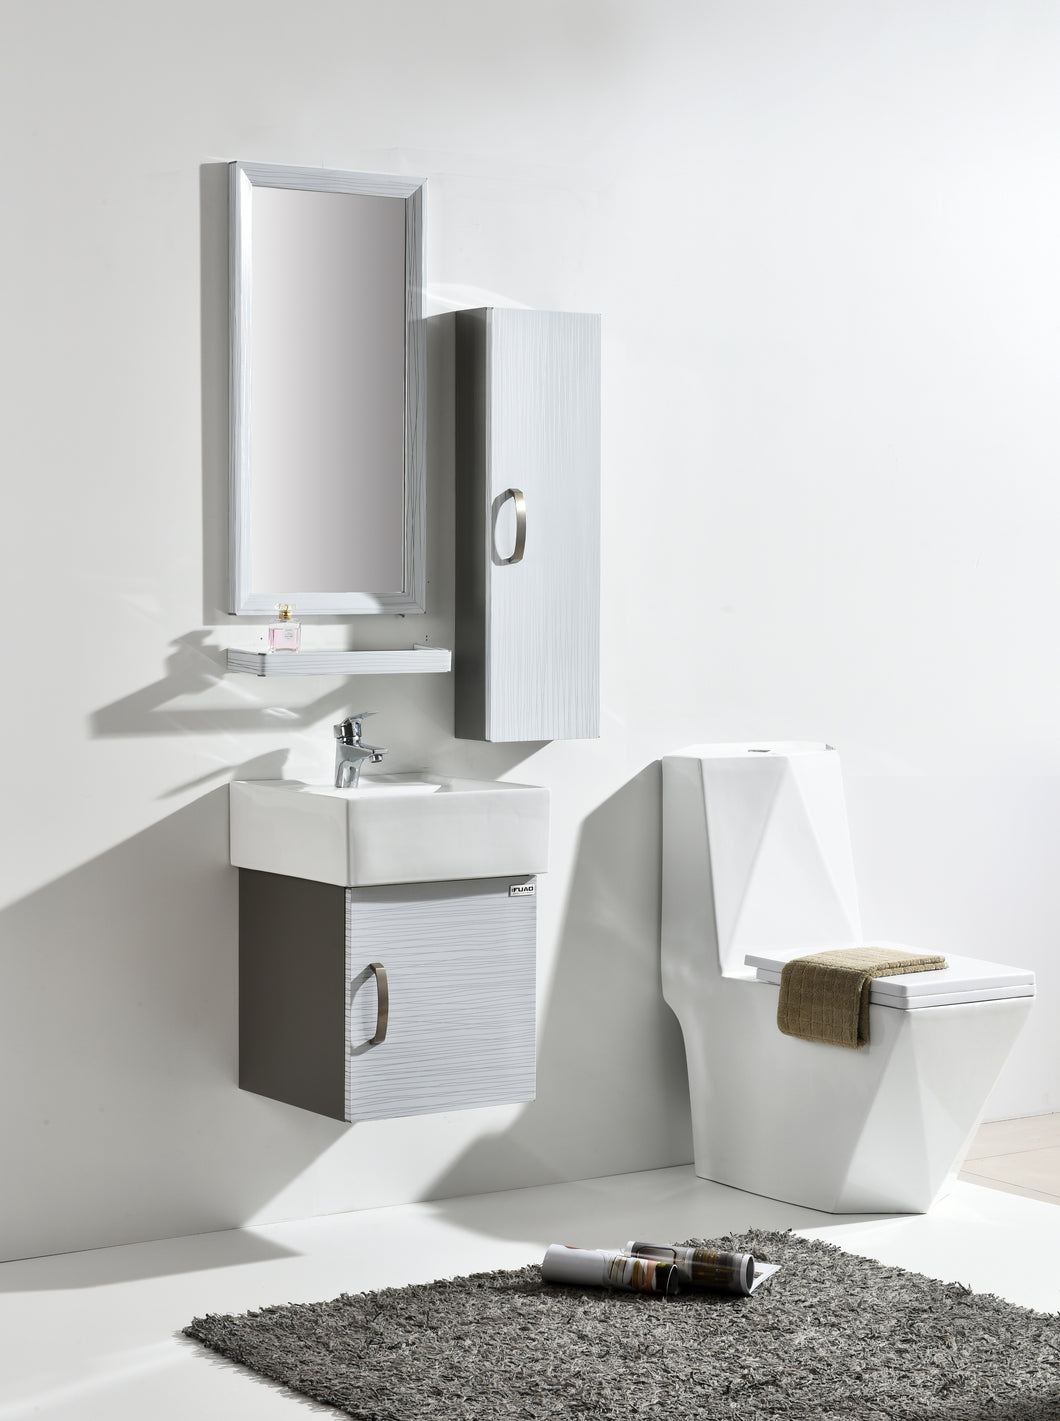 Blanca (wall mounted) Designer Art Bathroom Vanity With Cabinet Shelf & Wash Basin - IndiaCliq